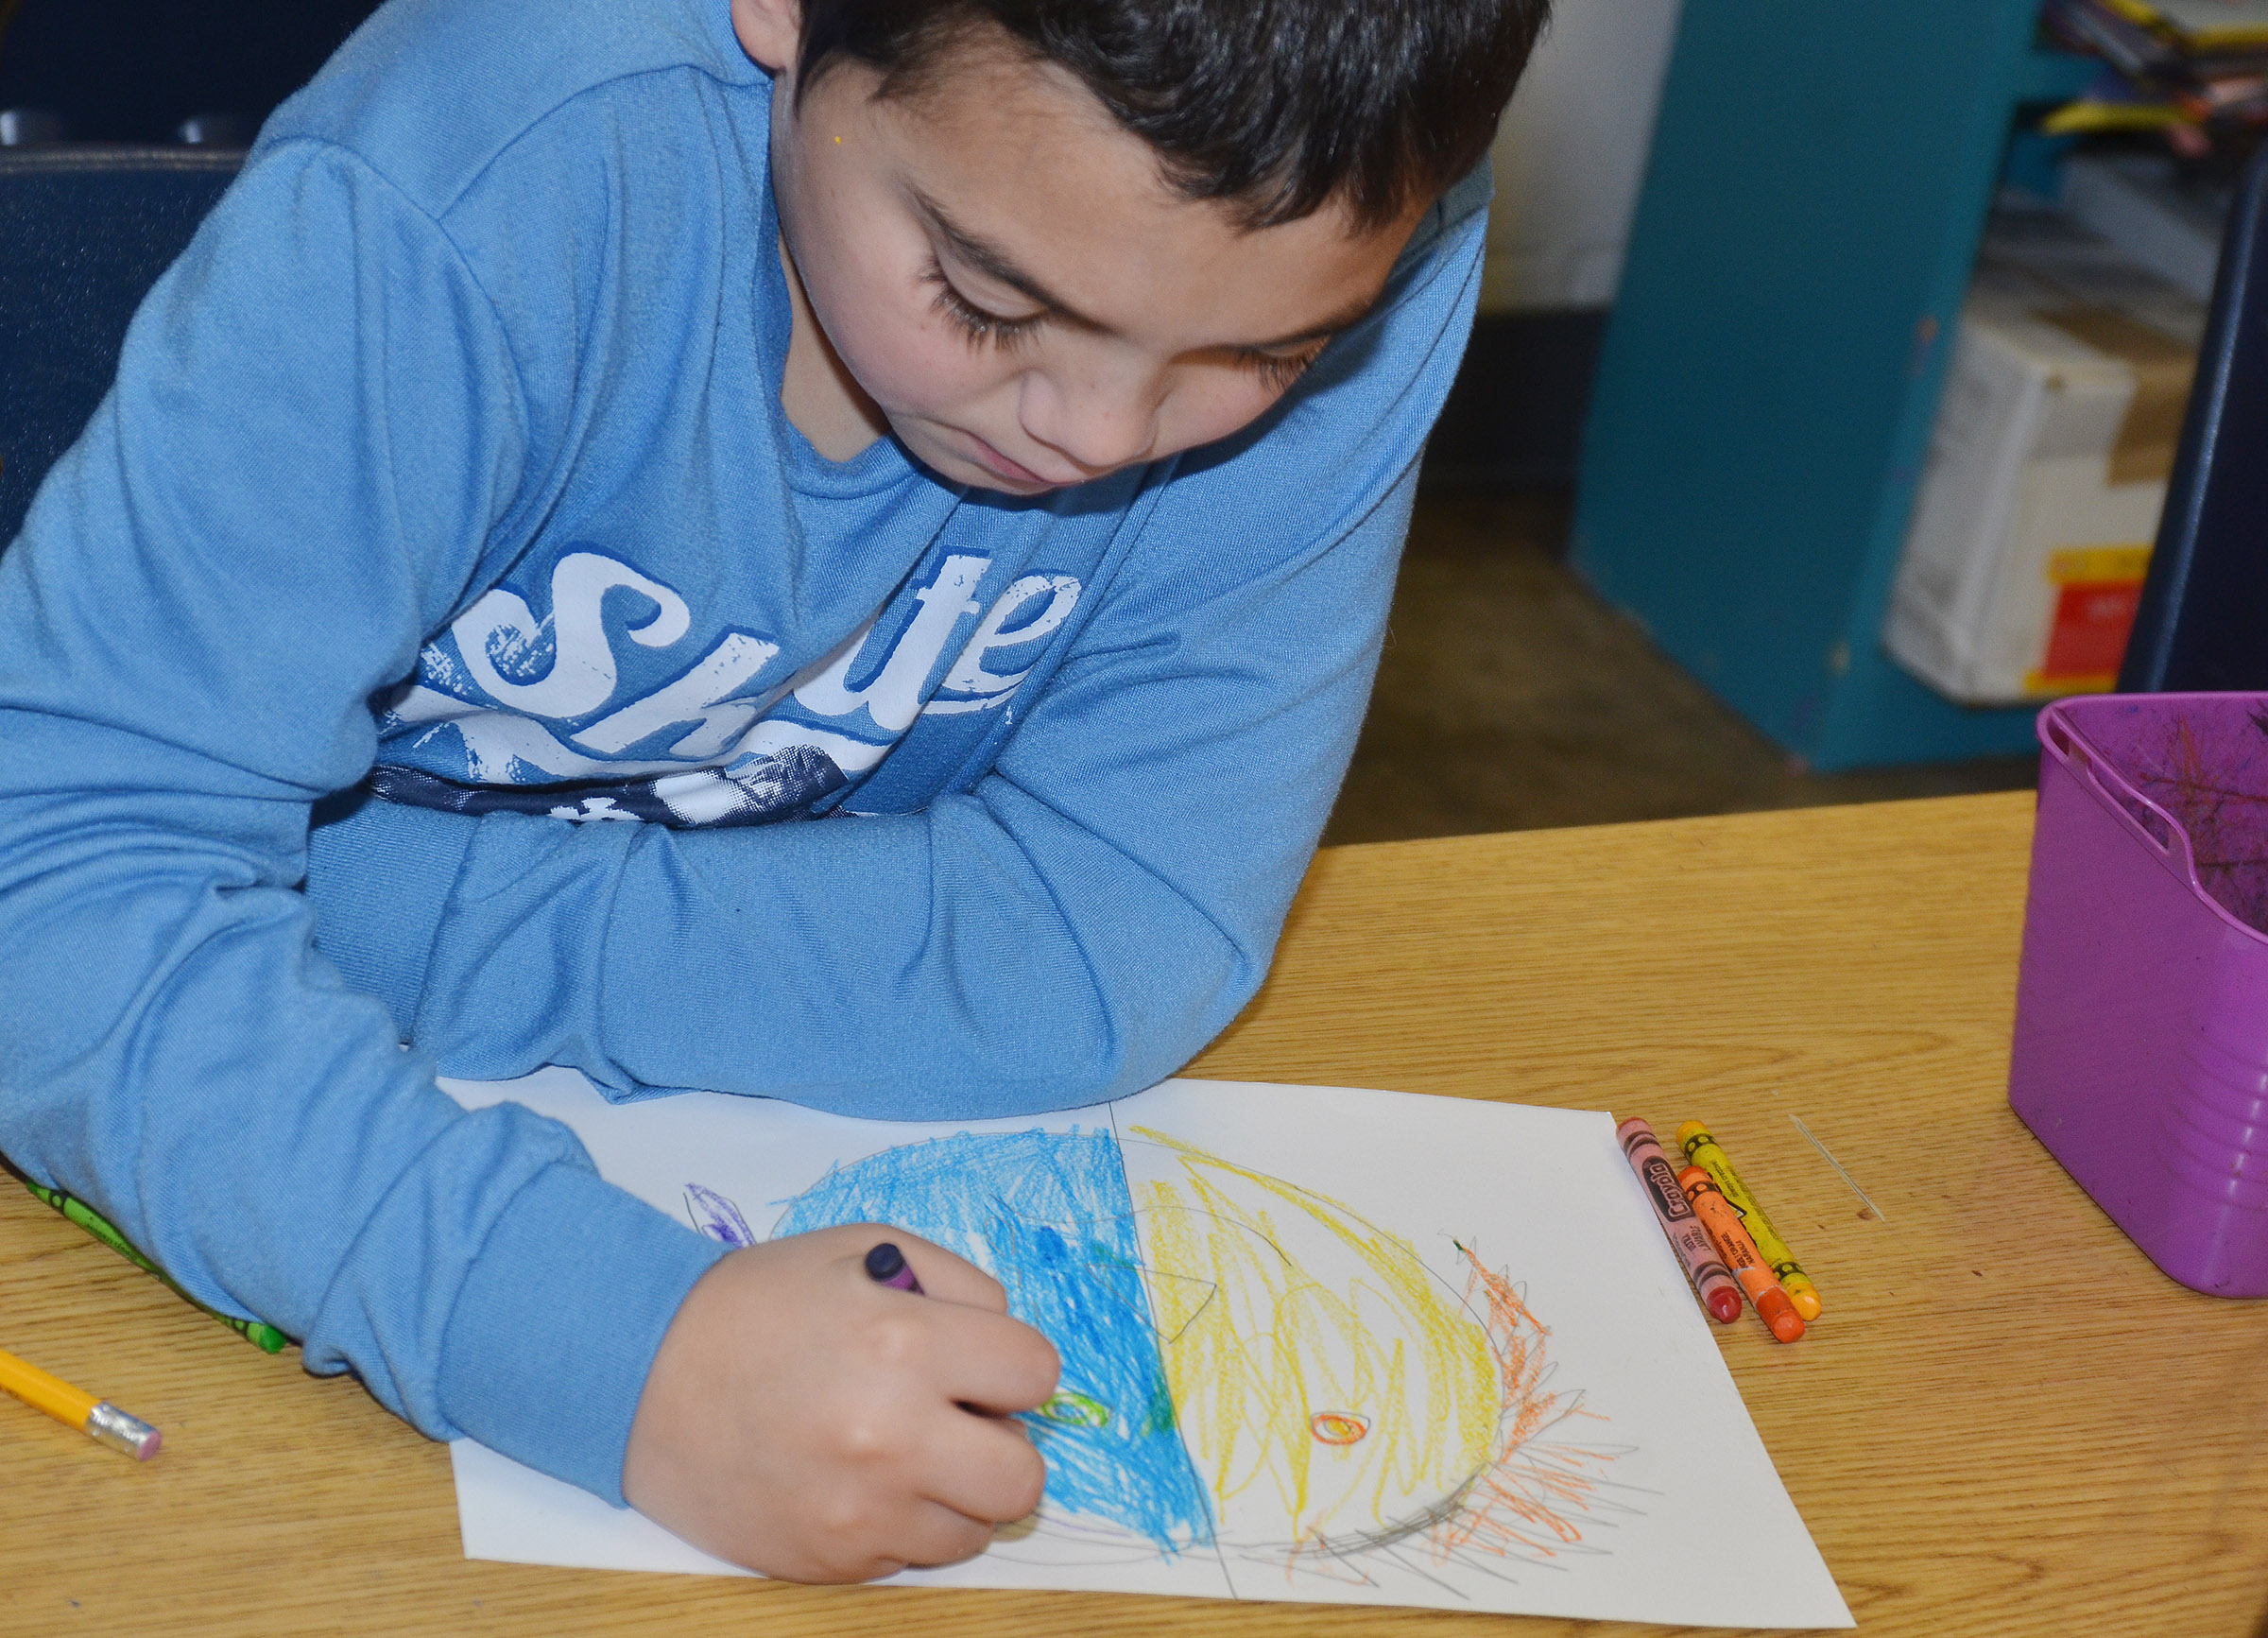 CES second-grader Diego Aquino colors his warm and cool color face.